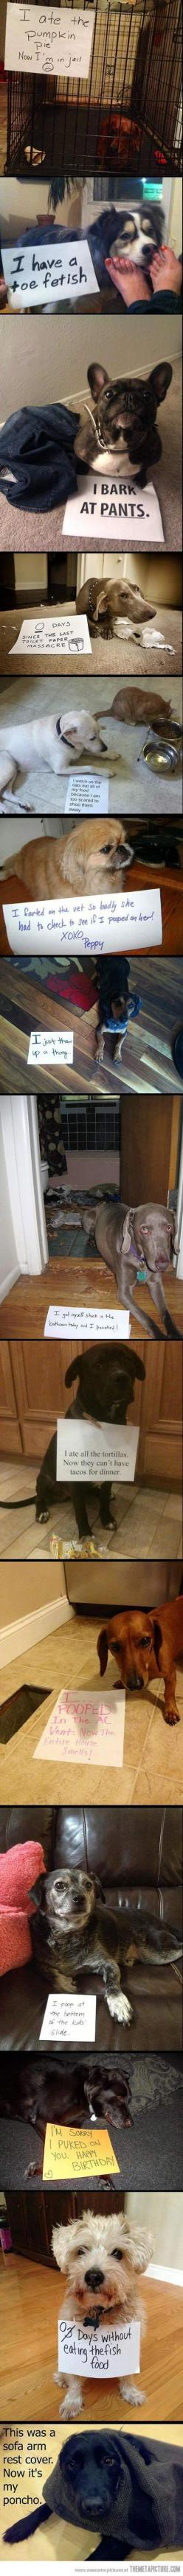 Best of Dog Shaming…it's so funny how sad the dogs look in the pictures: Doggie, Dog Shame, Giggle, Dog Shaming, Puppy, Animal Shaming, So Funny